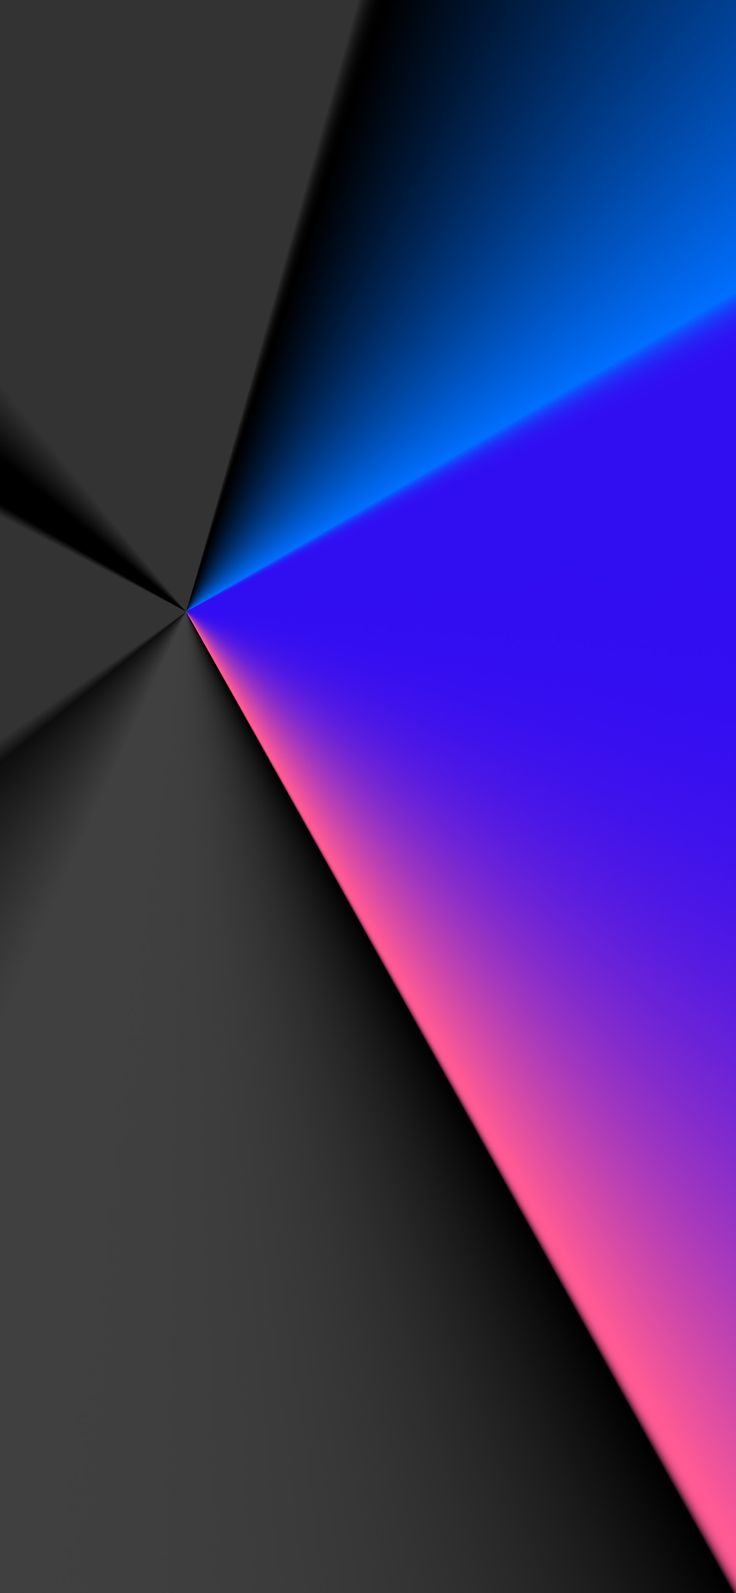 Abstract HD Wallpapers 554435404125275930 3